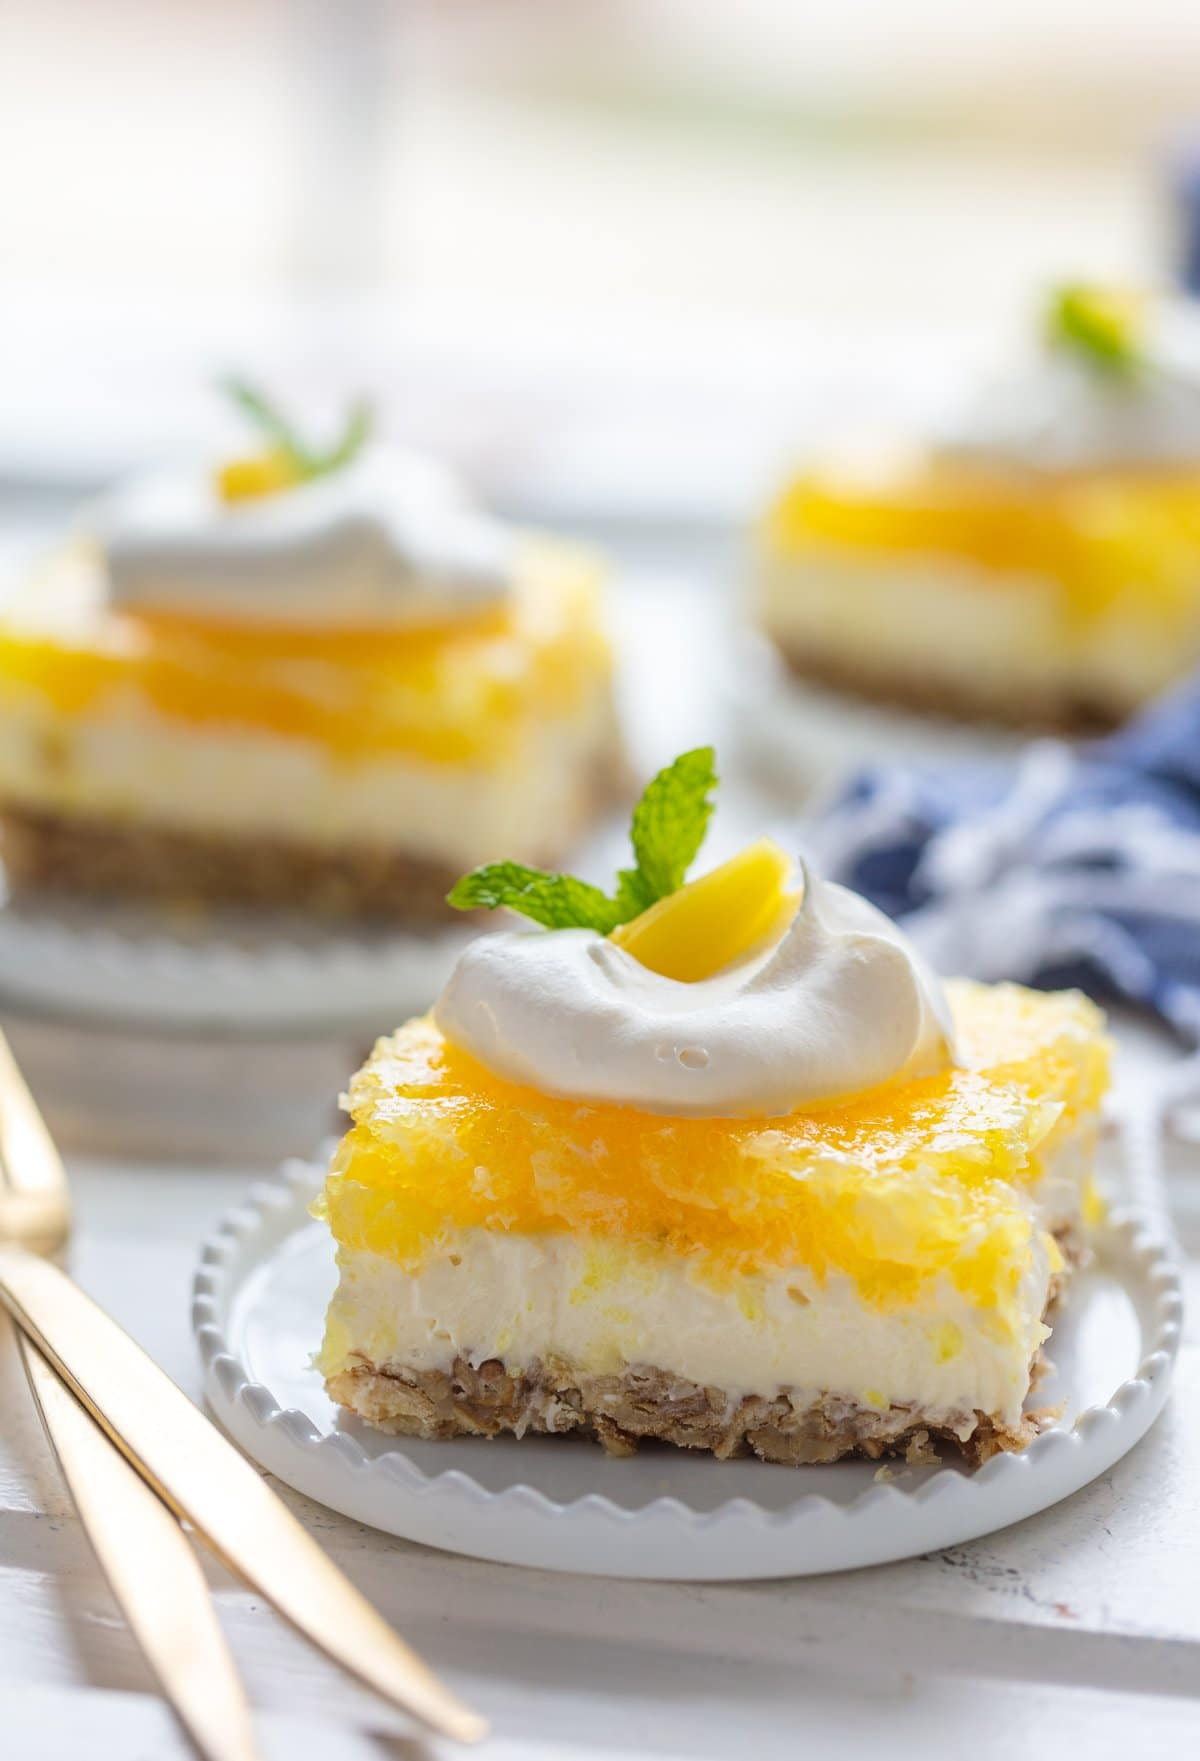 Pretzel salad with pineapple